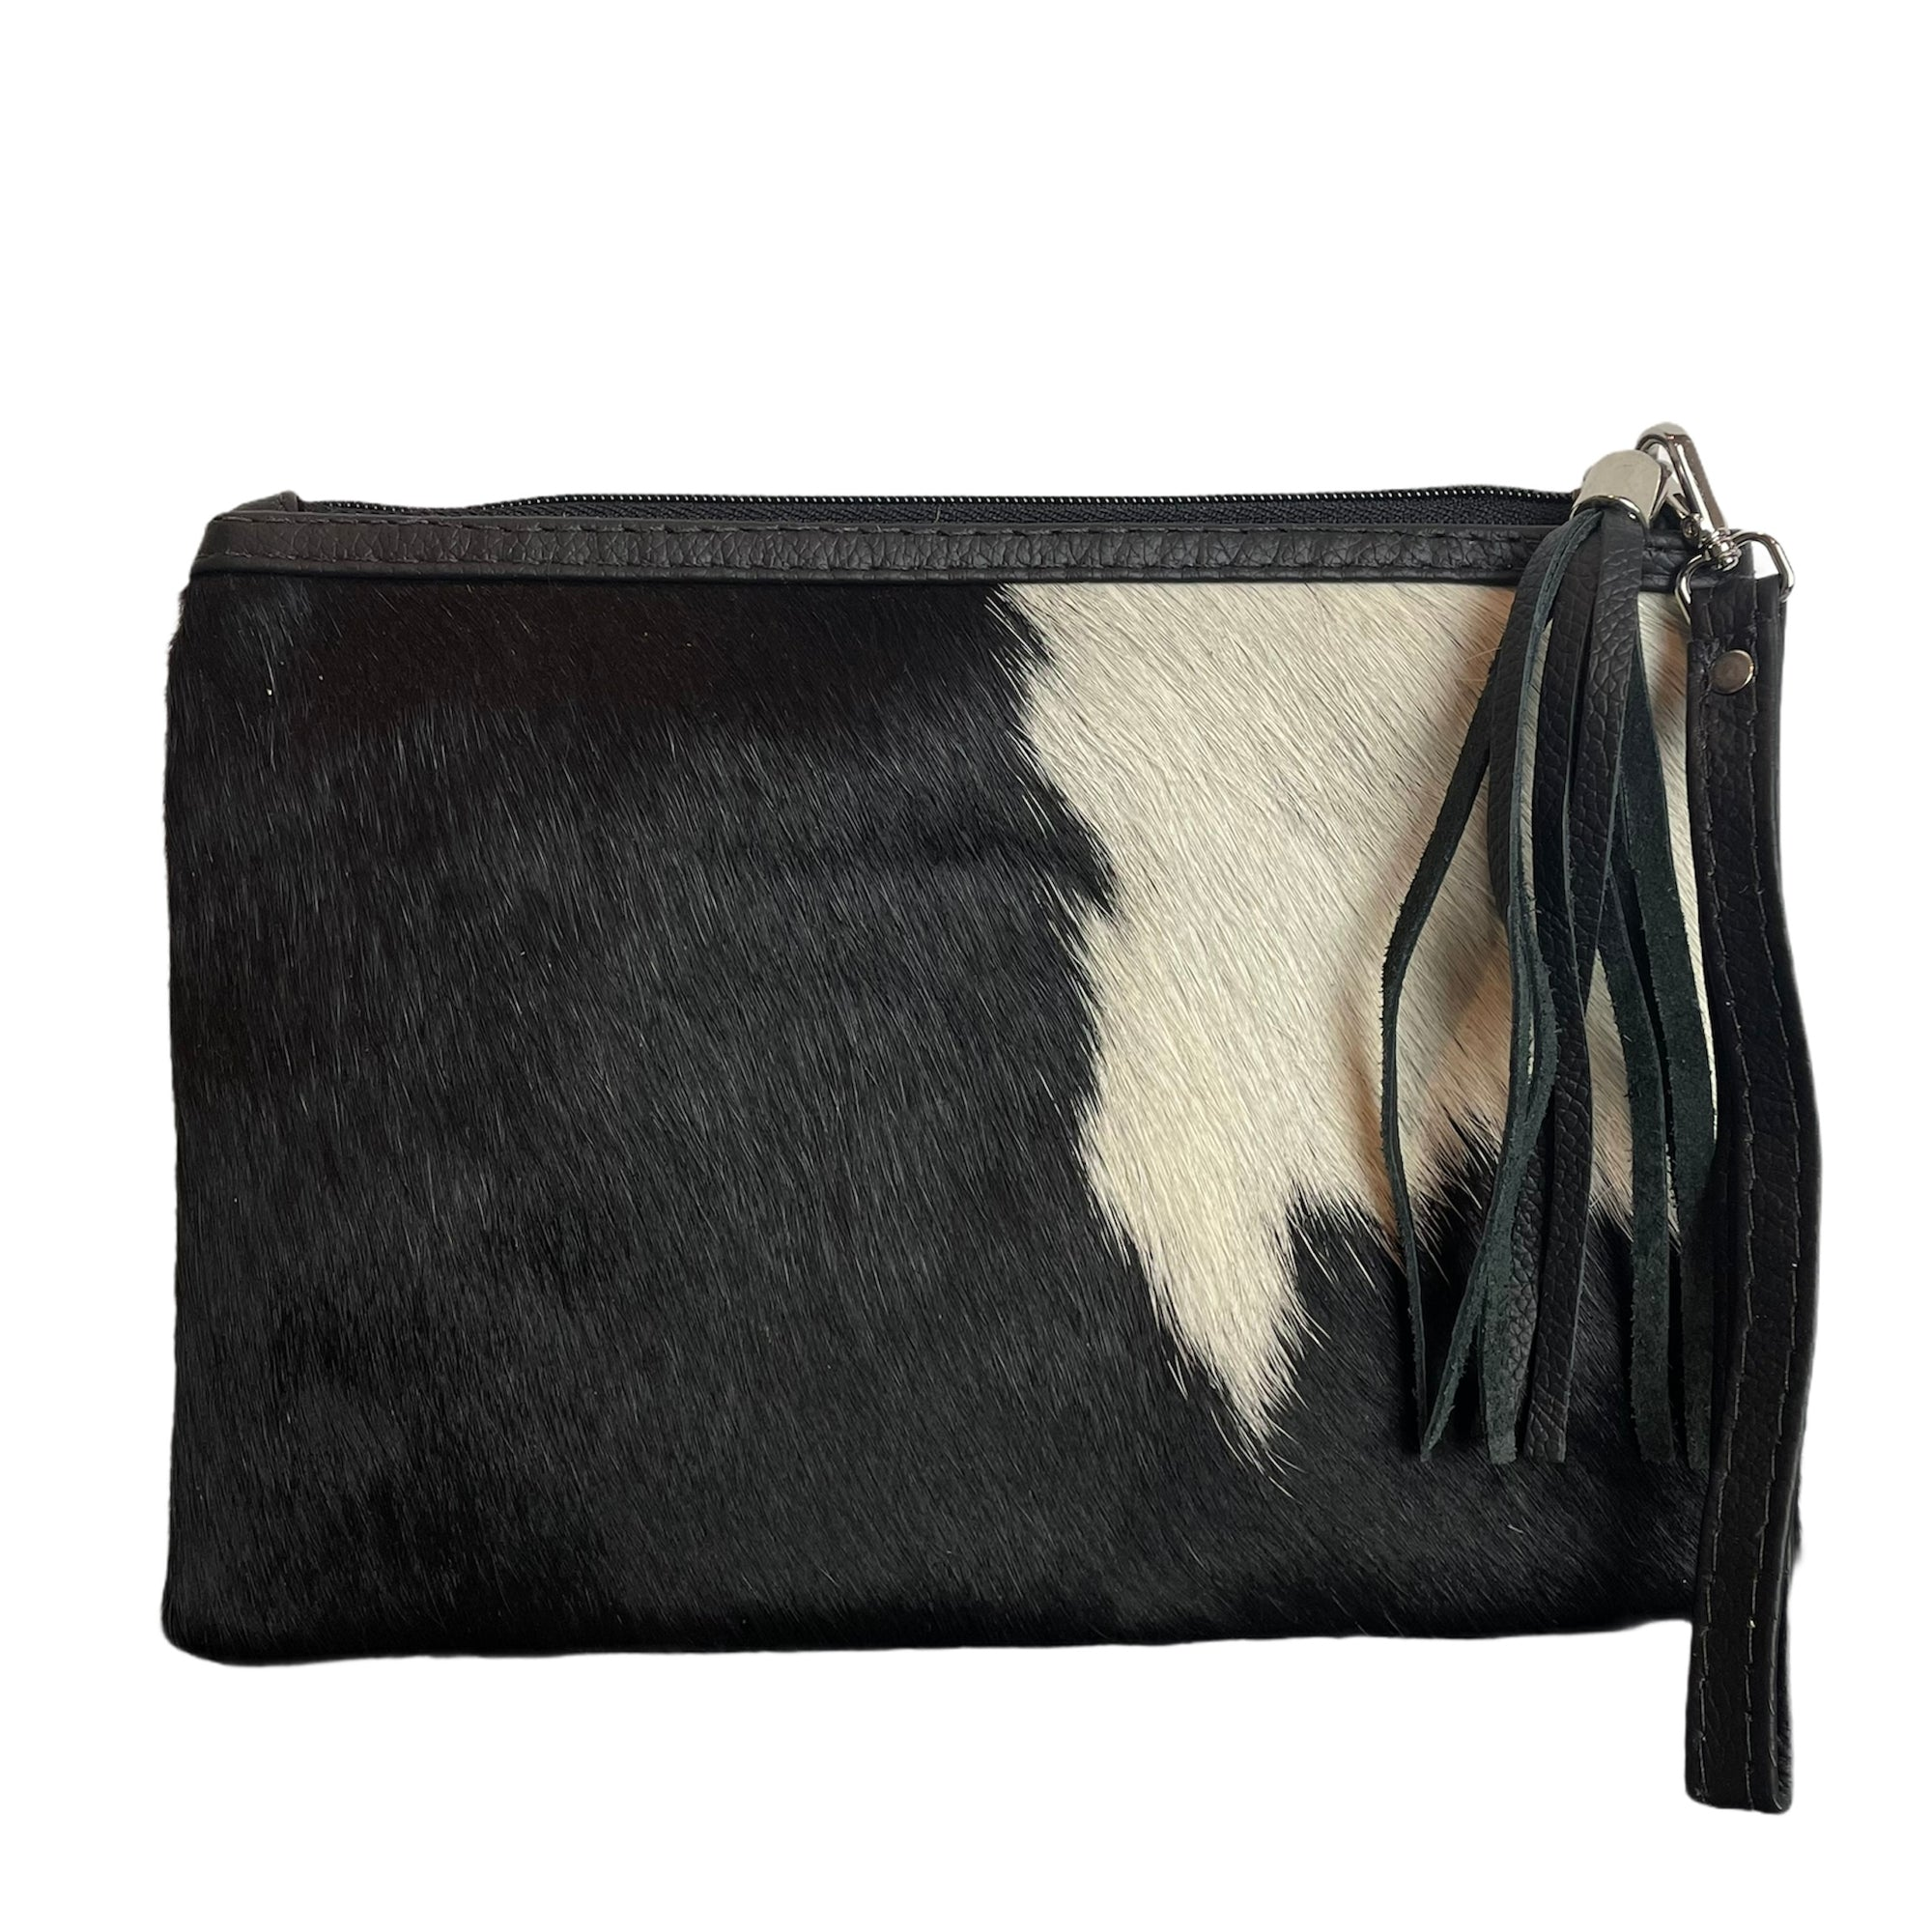 COWHIDE EVERYDAY SMALL CLUTCH - BLACK + WHITE. Izel designs